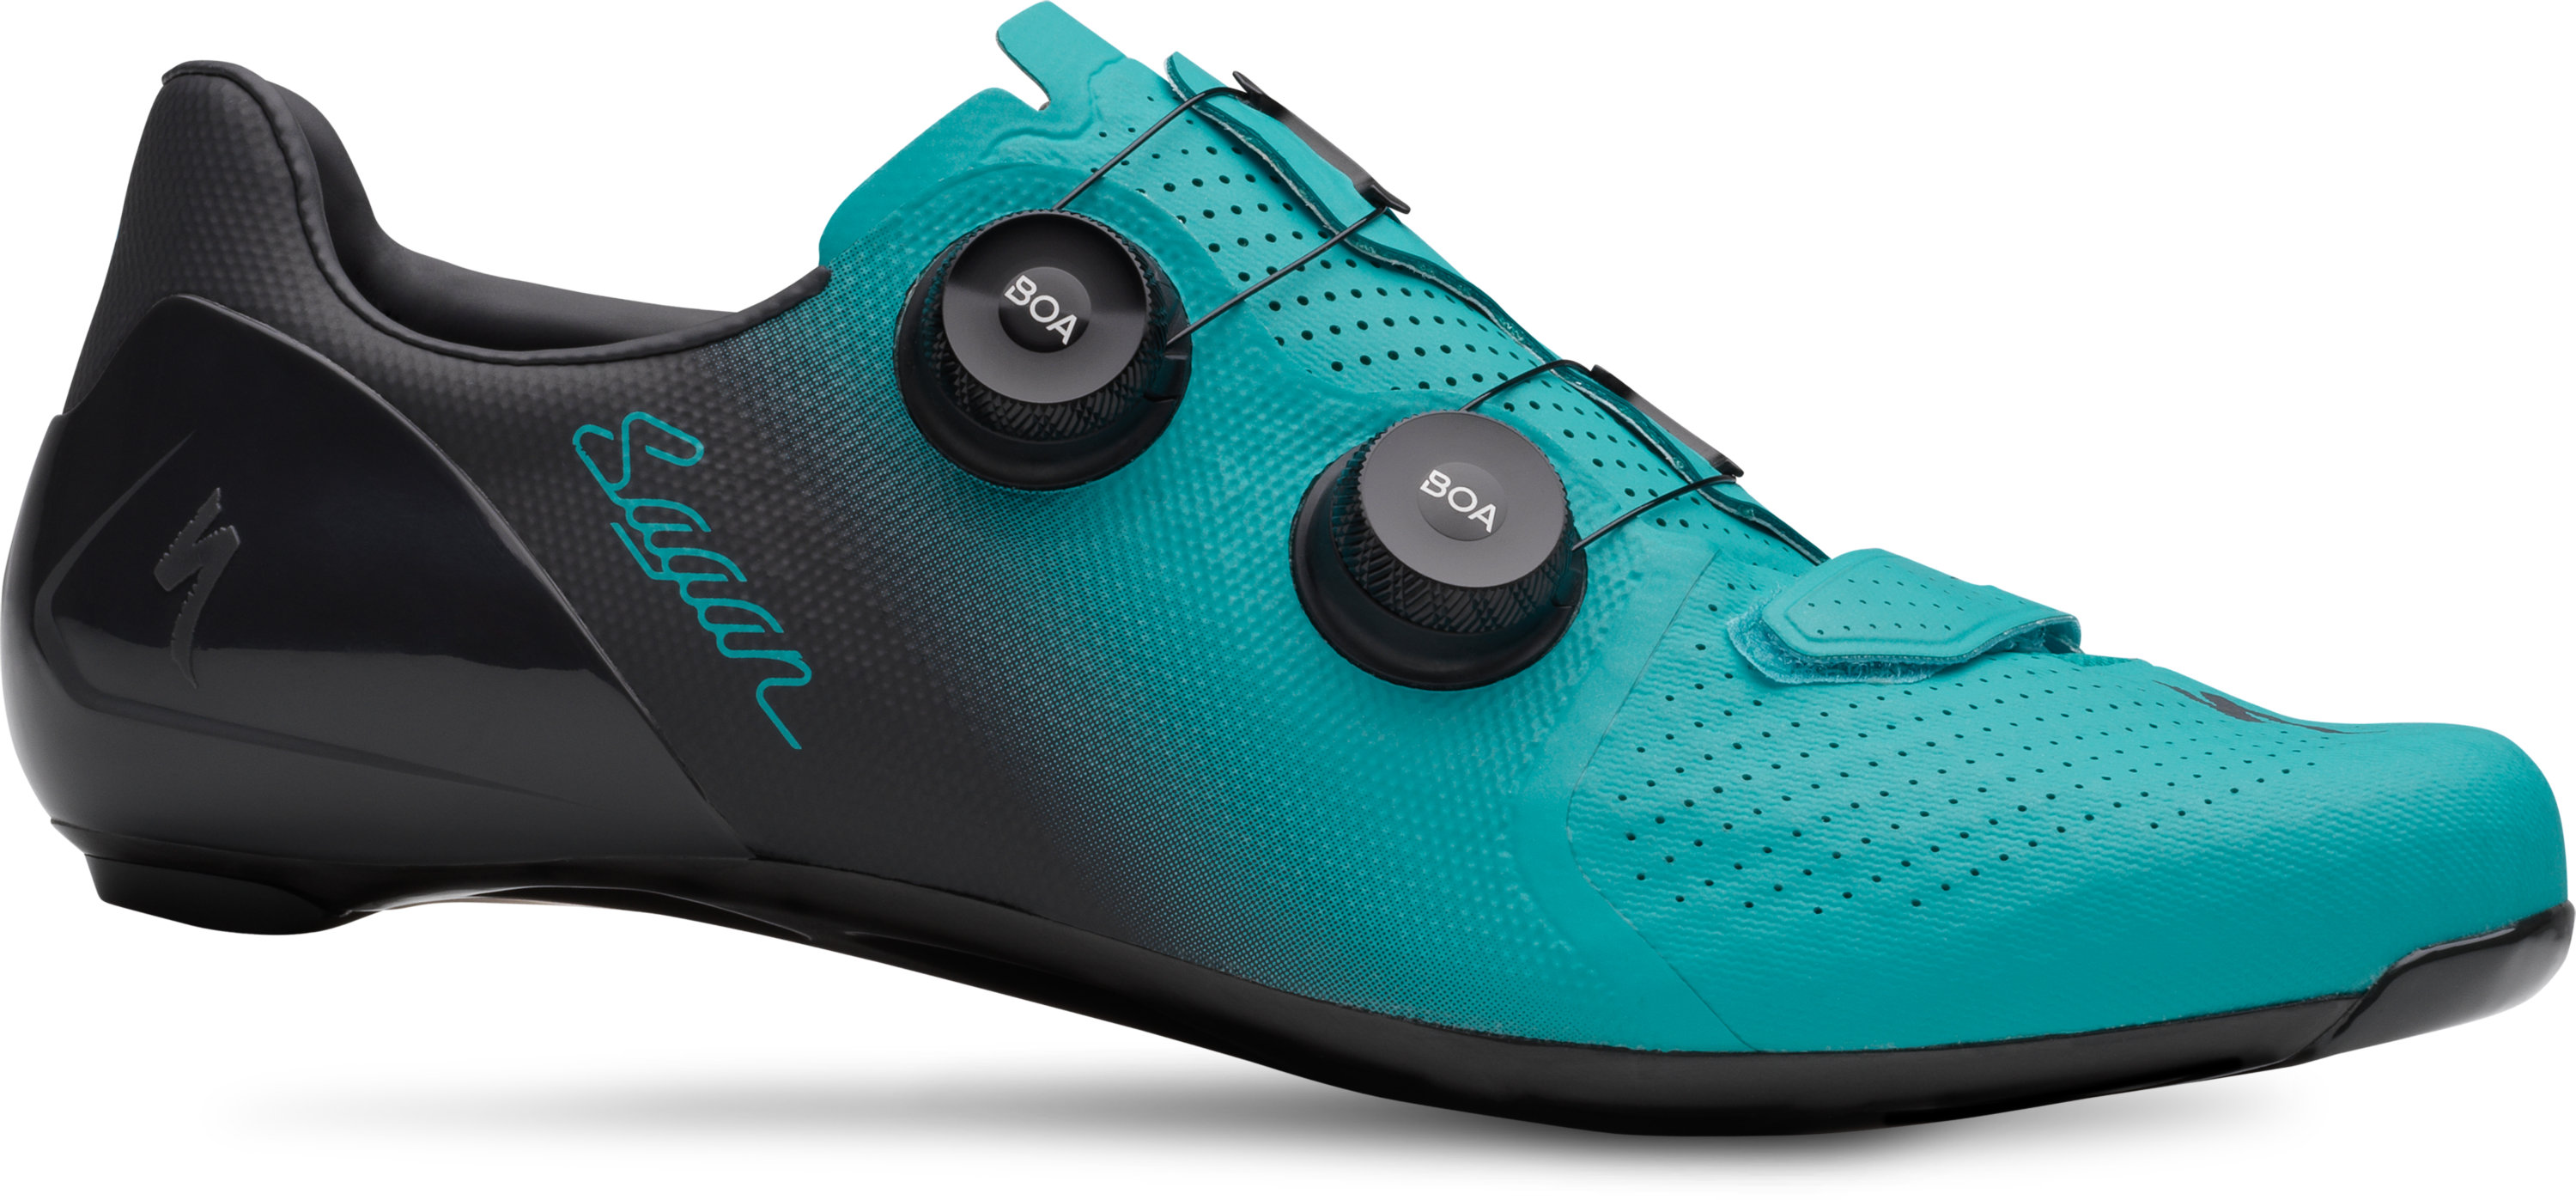 Boa Kopen S Works 7 Road Shoes Sagan Collection Ltd Specialized